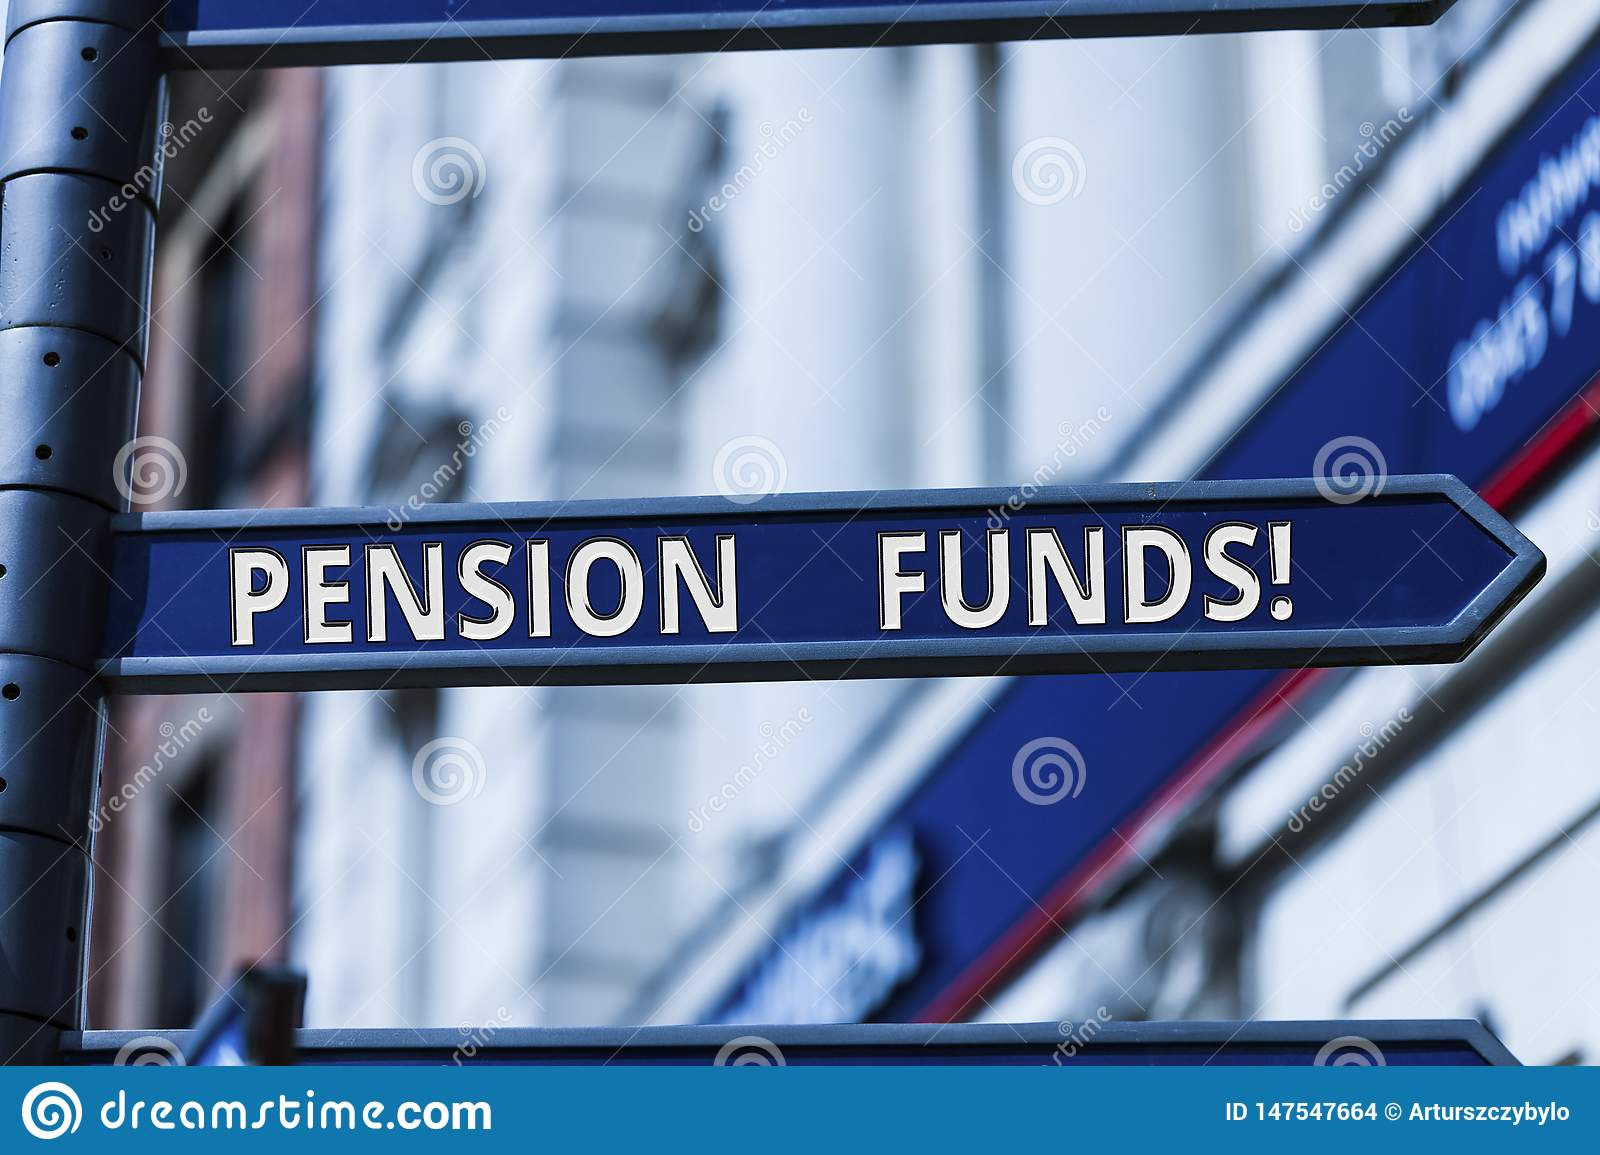 Word writing text Pension Funds. Business concept for investment pools that pay for employee retirement commitments.